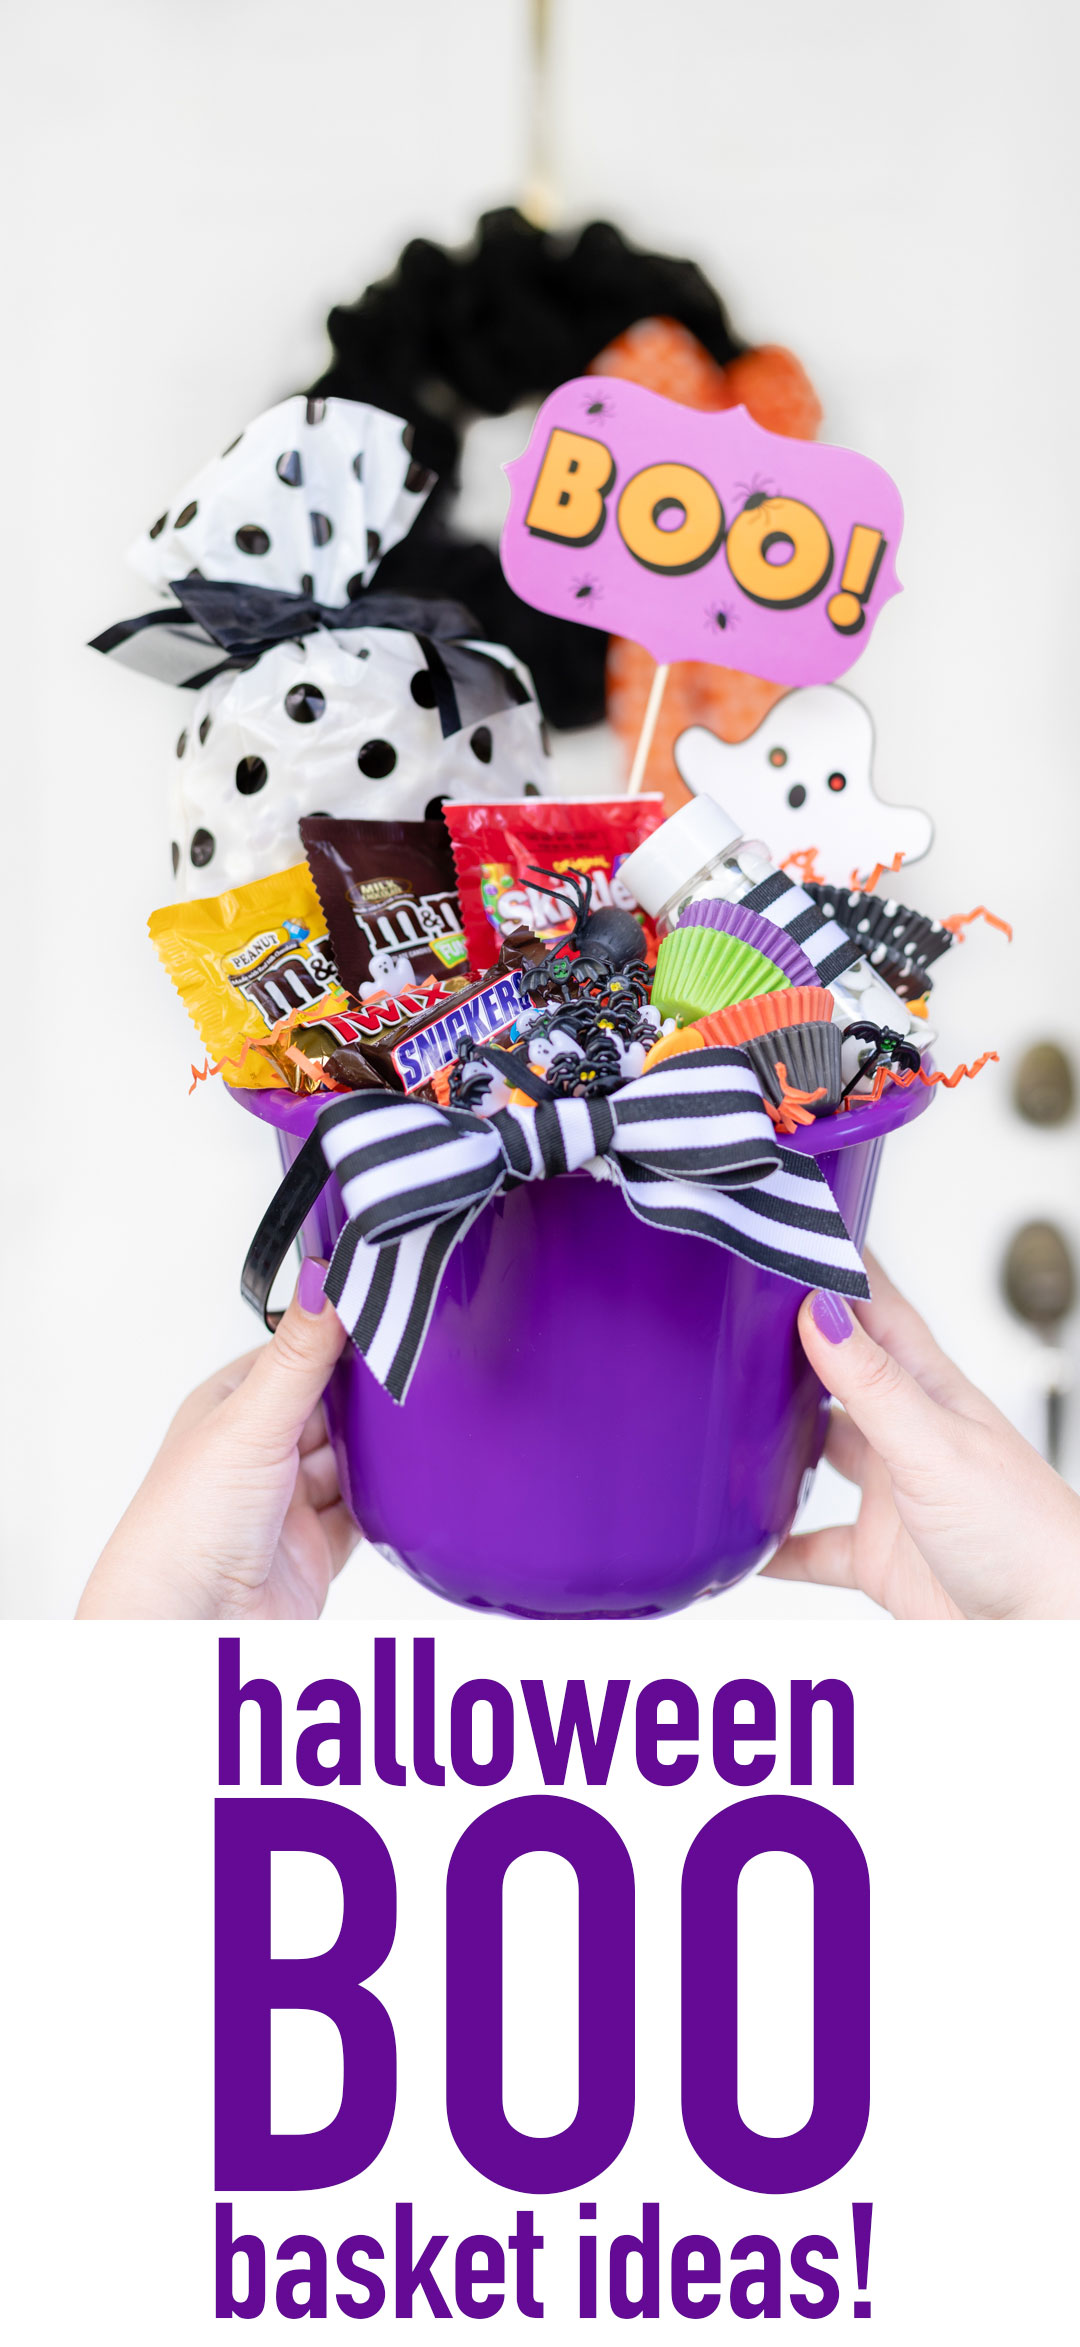 How to Boo Someone for Halloween. Boo gift basket ideas.